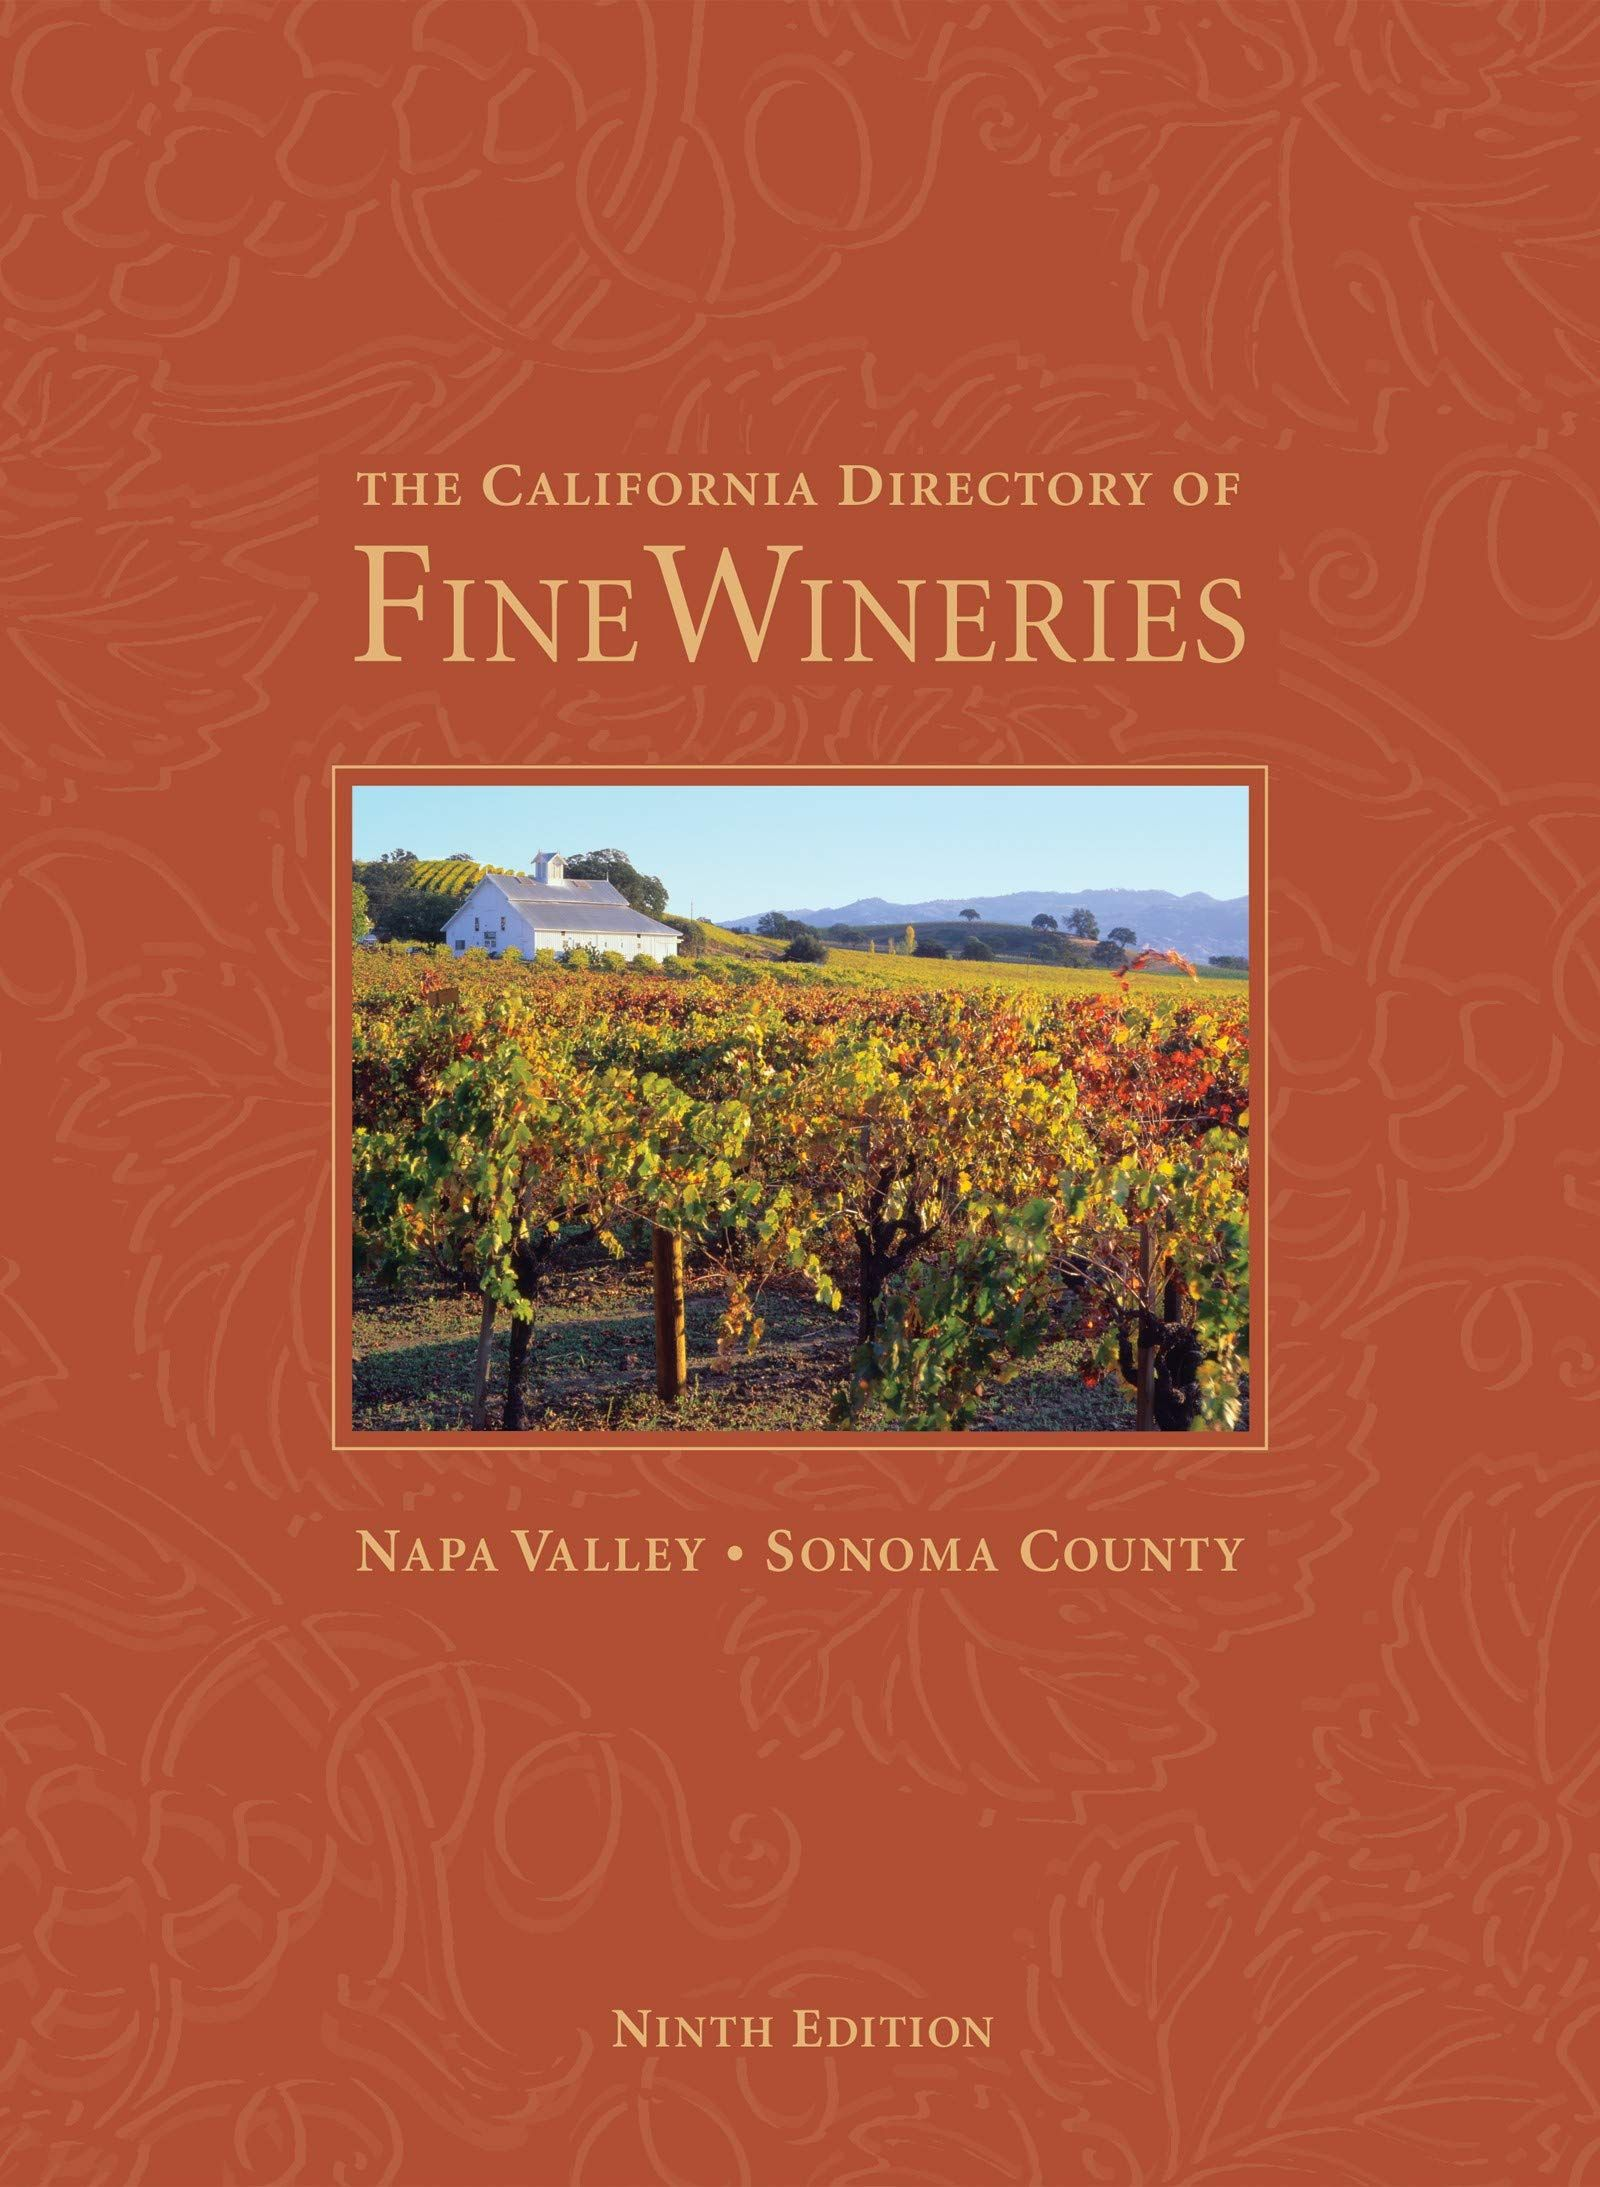 The California Directory Of Fine Wineries Napa Valley Sonoma County Hardcover May 14 2019 Wineries Napa F Napa Valley Sonoma County California Winery